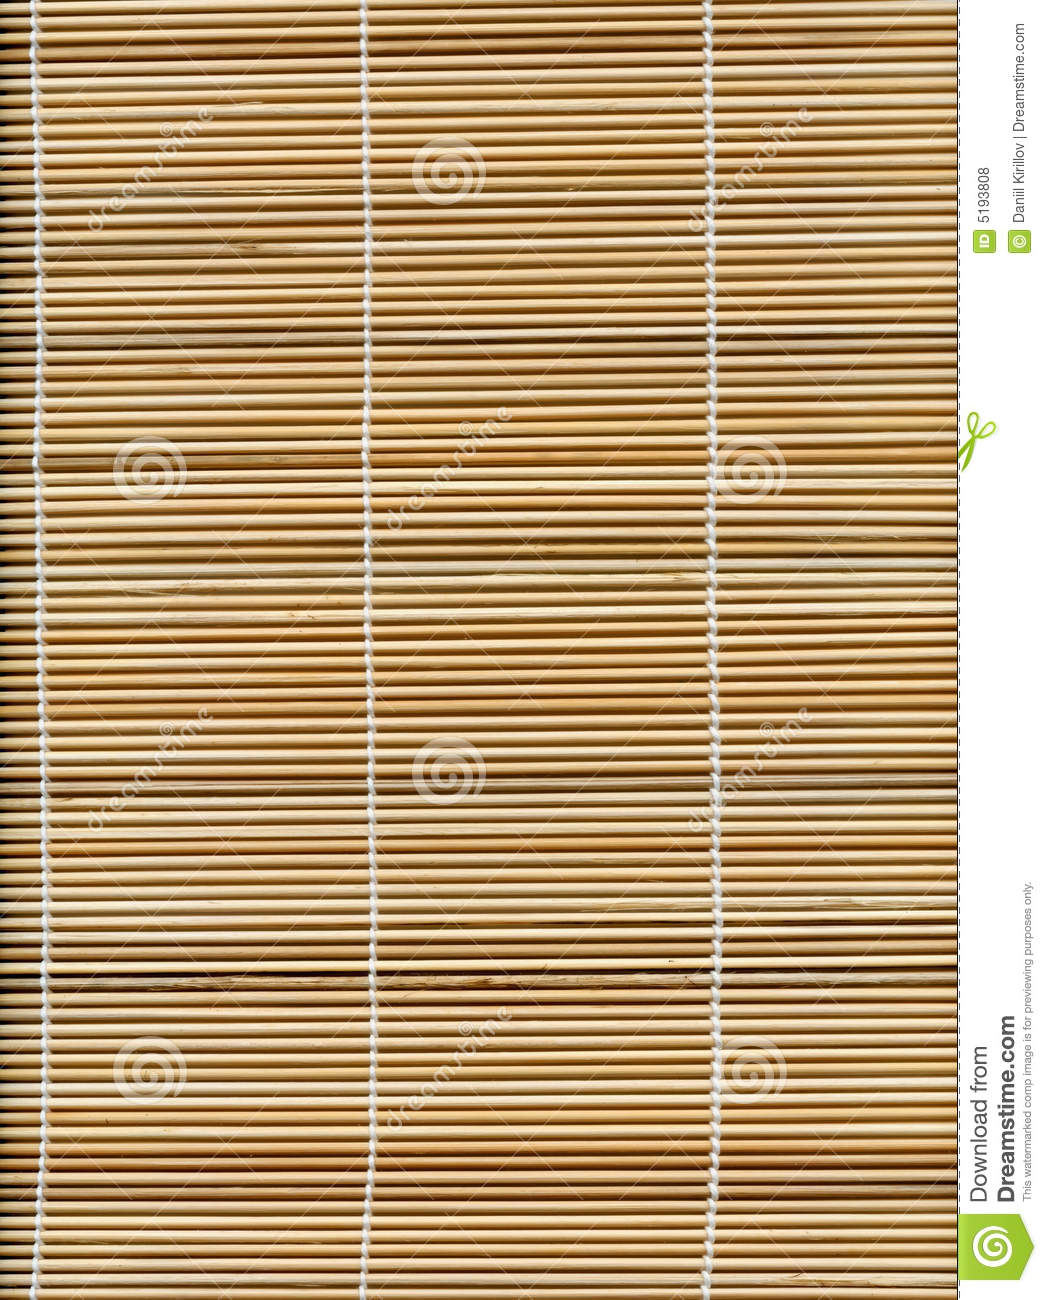 Bamboo Stick Straw Mat Texture Stock Photo Image Of